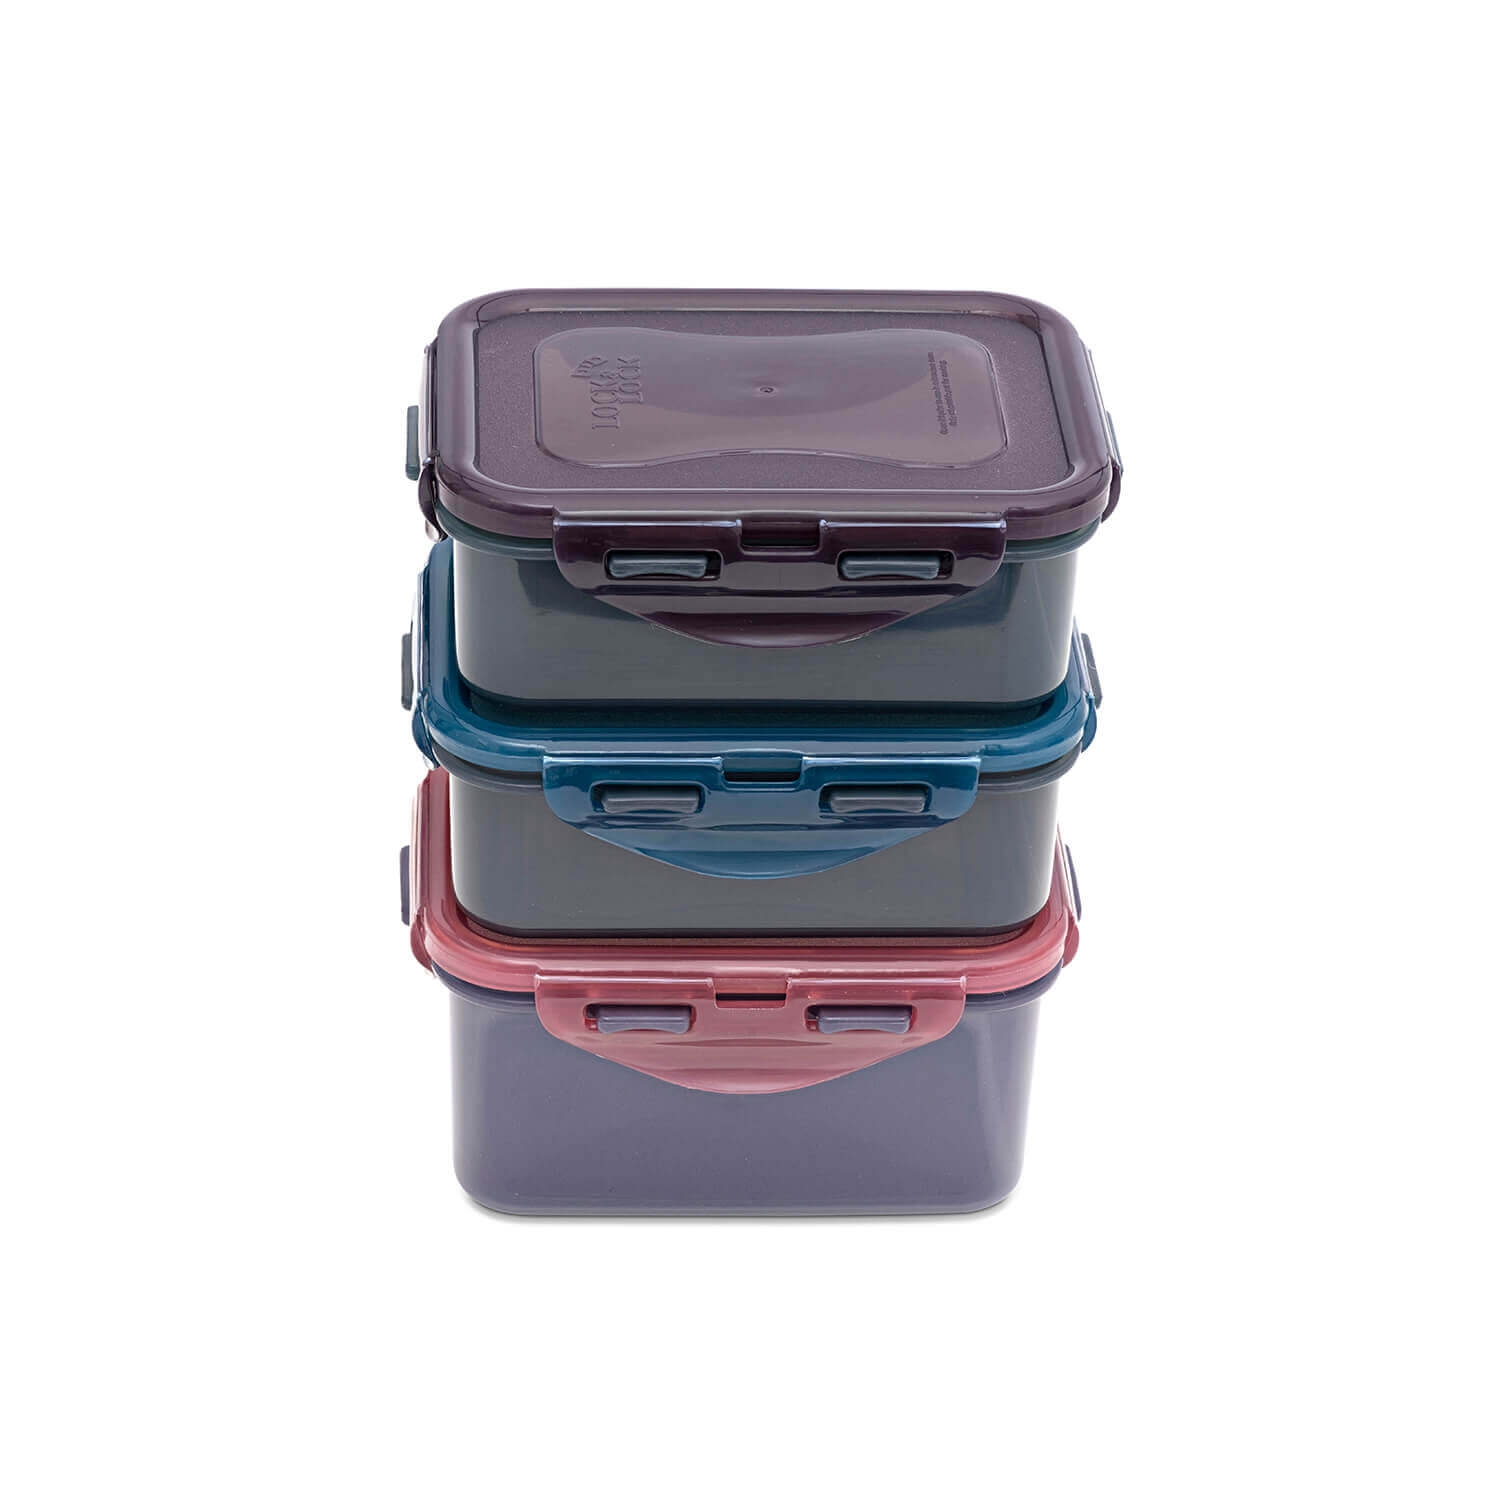 Image of Lock And Lock Eco 3 Piece Food Container Set, Assorted